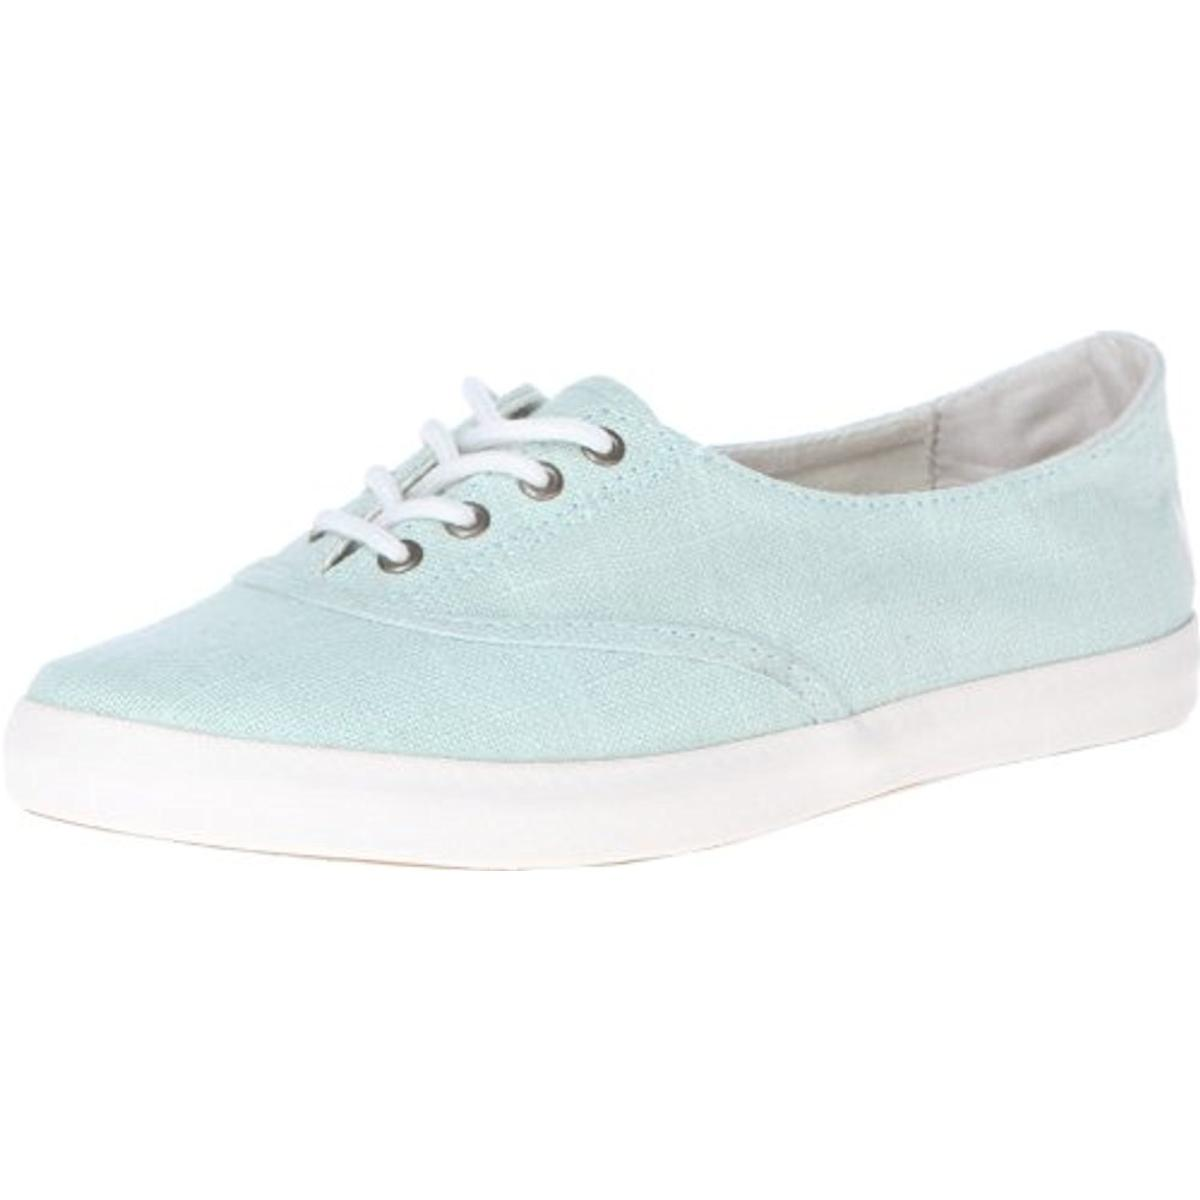 reef womens mist 2 canvas arch support casual shoes